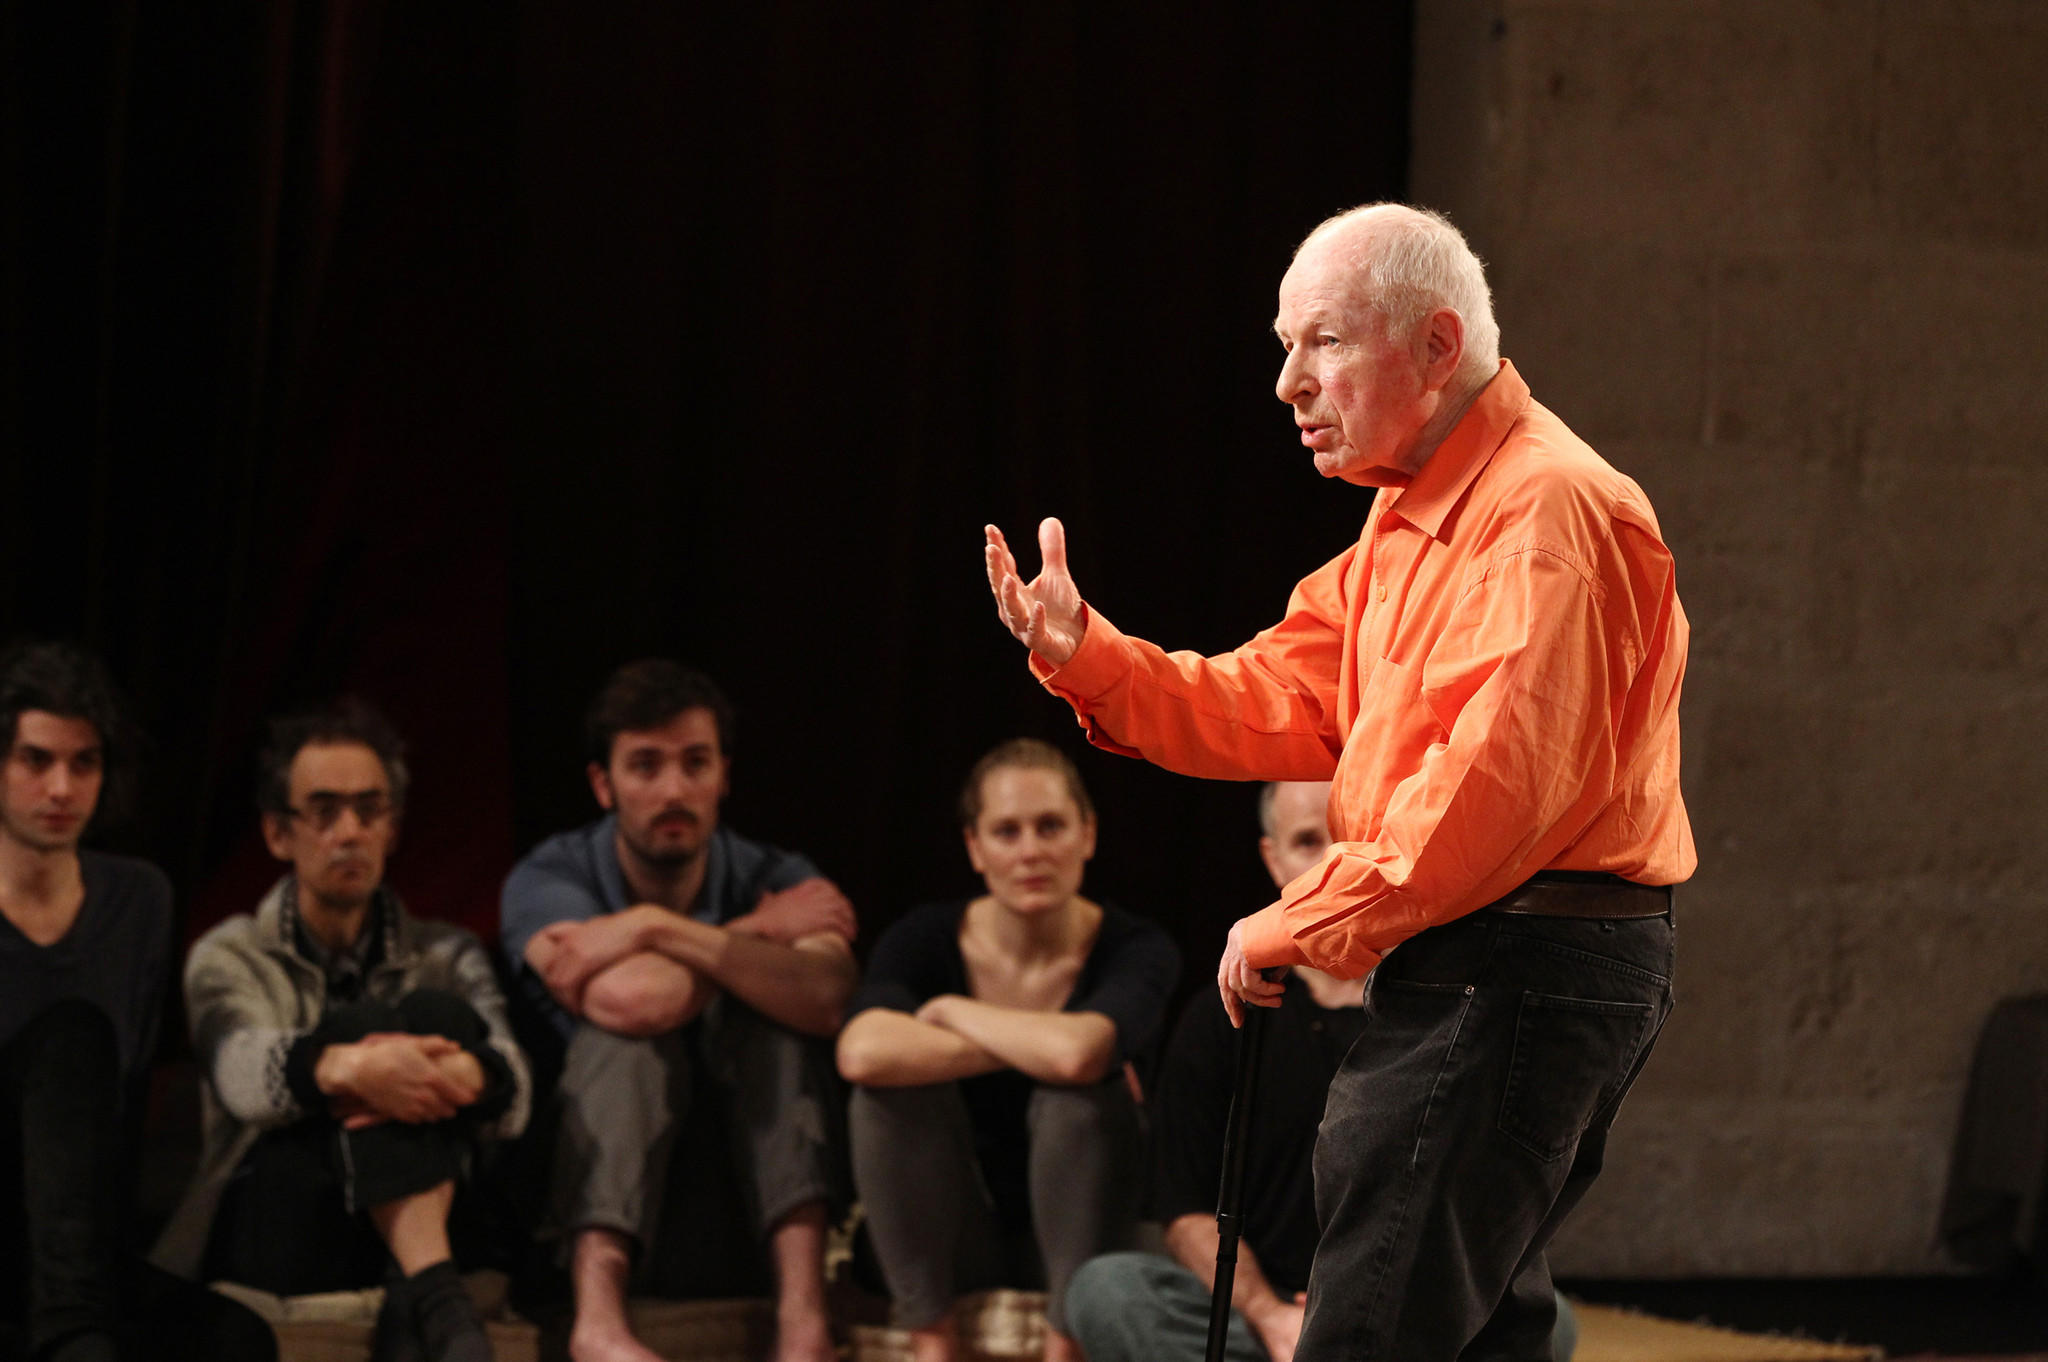 PeterBrook rehearsals